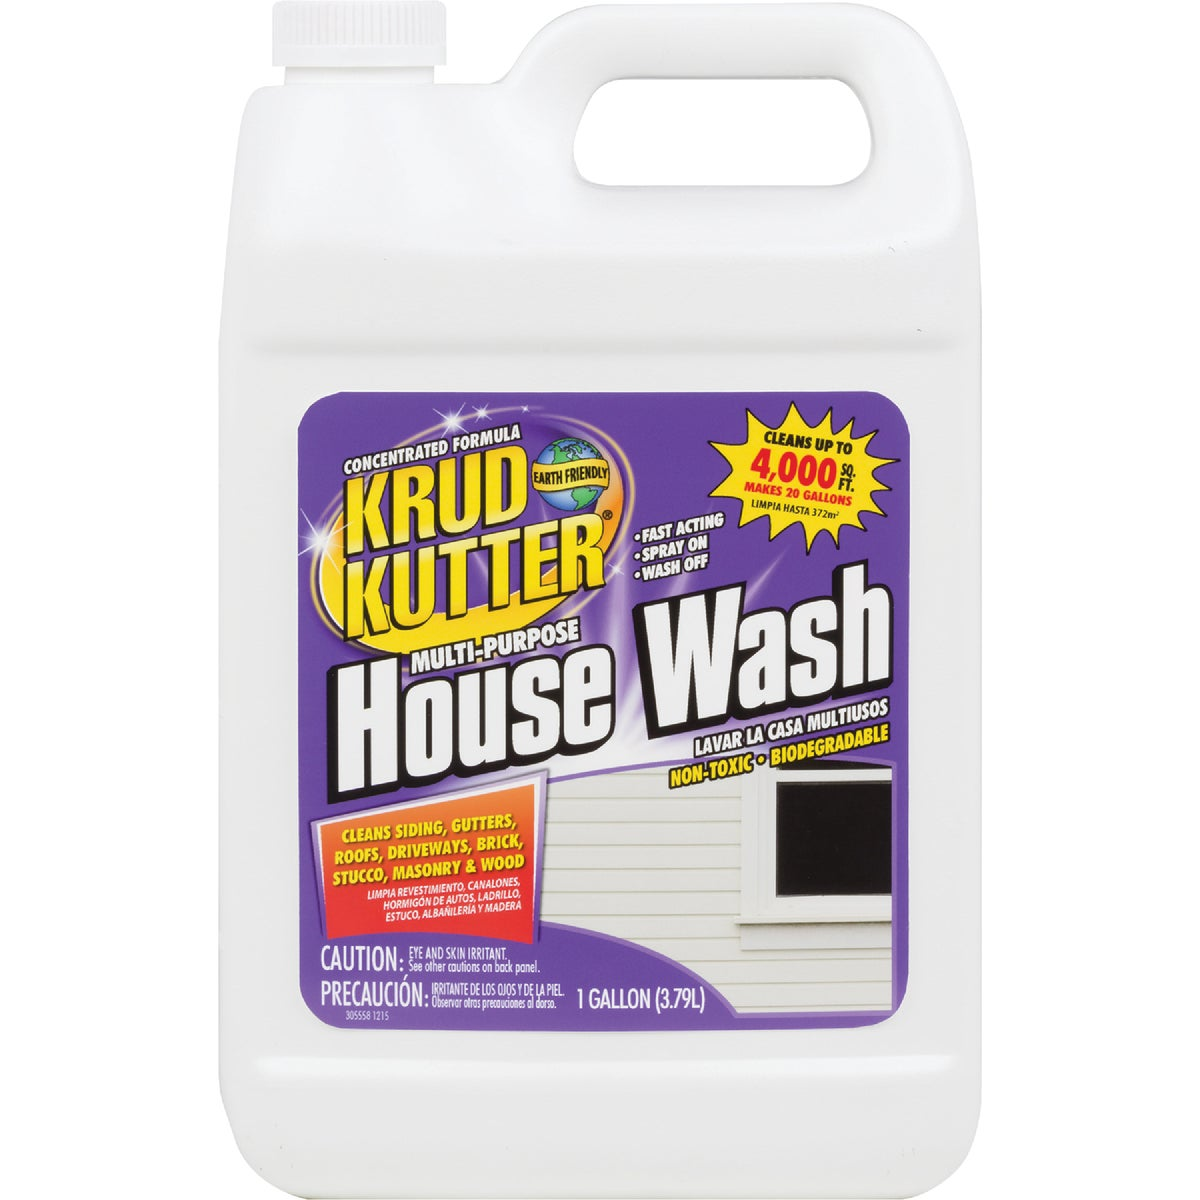 GAL HOUSE WASH - HW01/2 by Supreme Chemicals